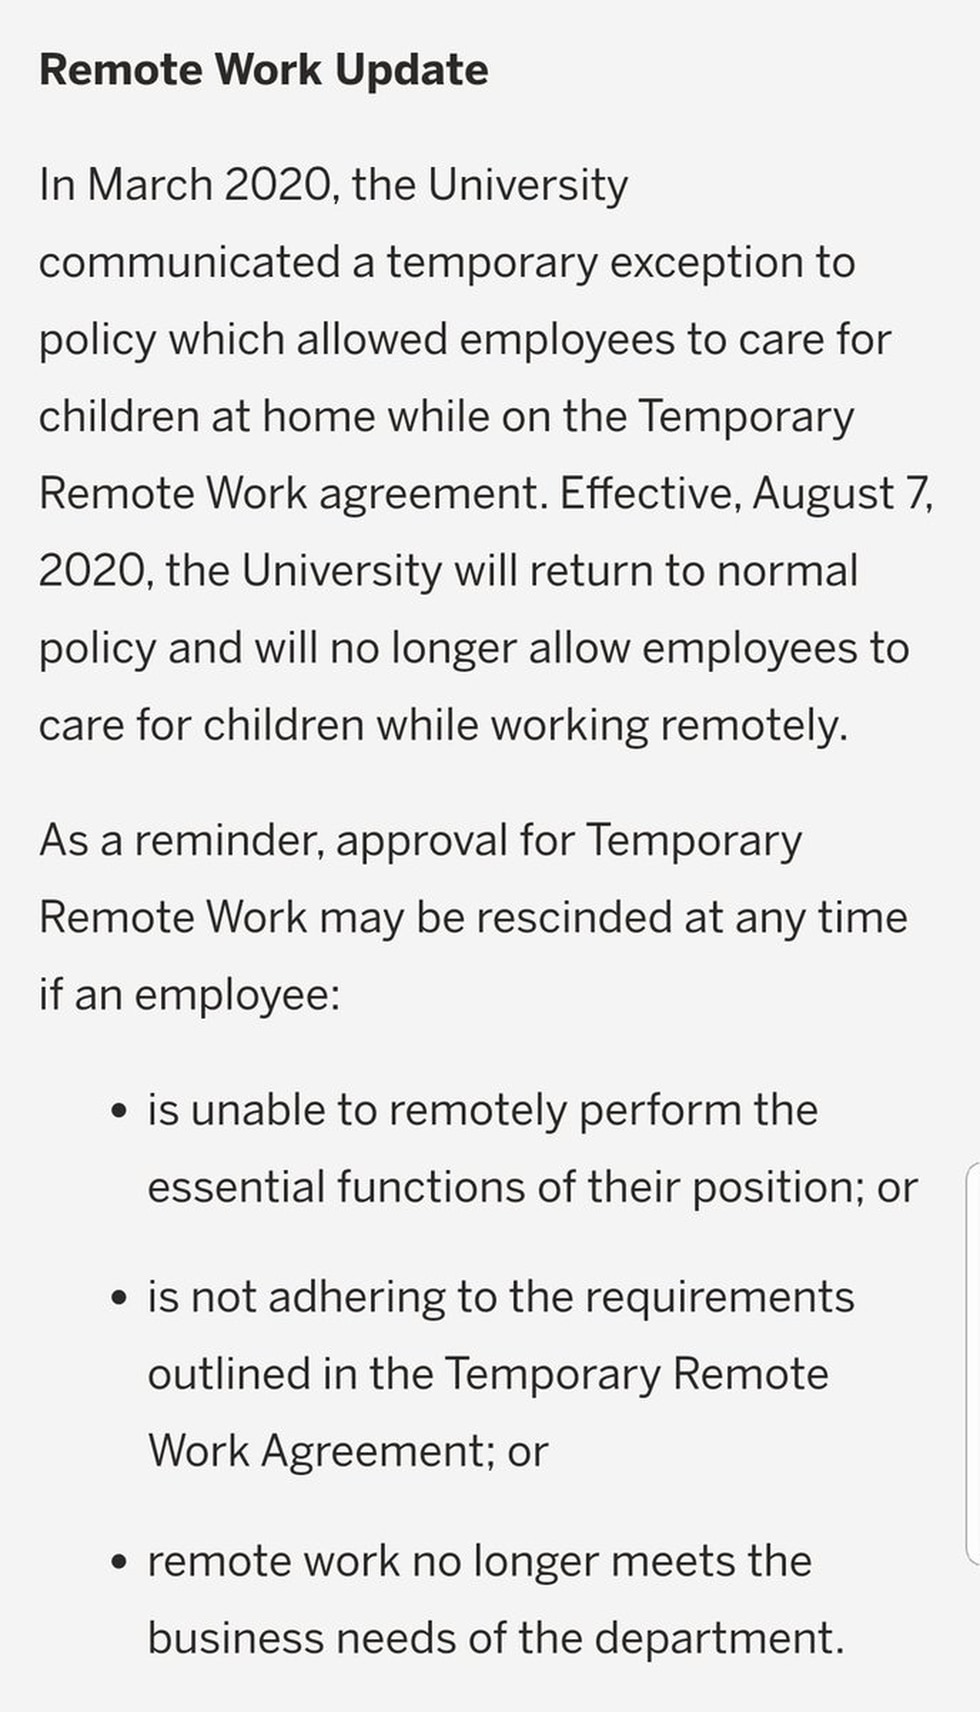 FSU Remote Work Memo from 6/27